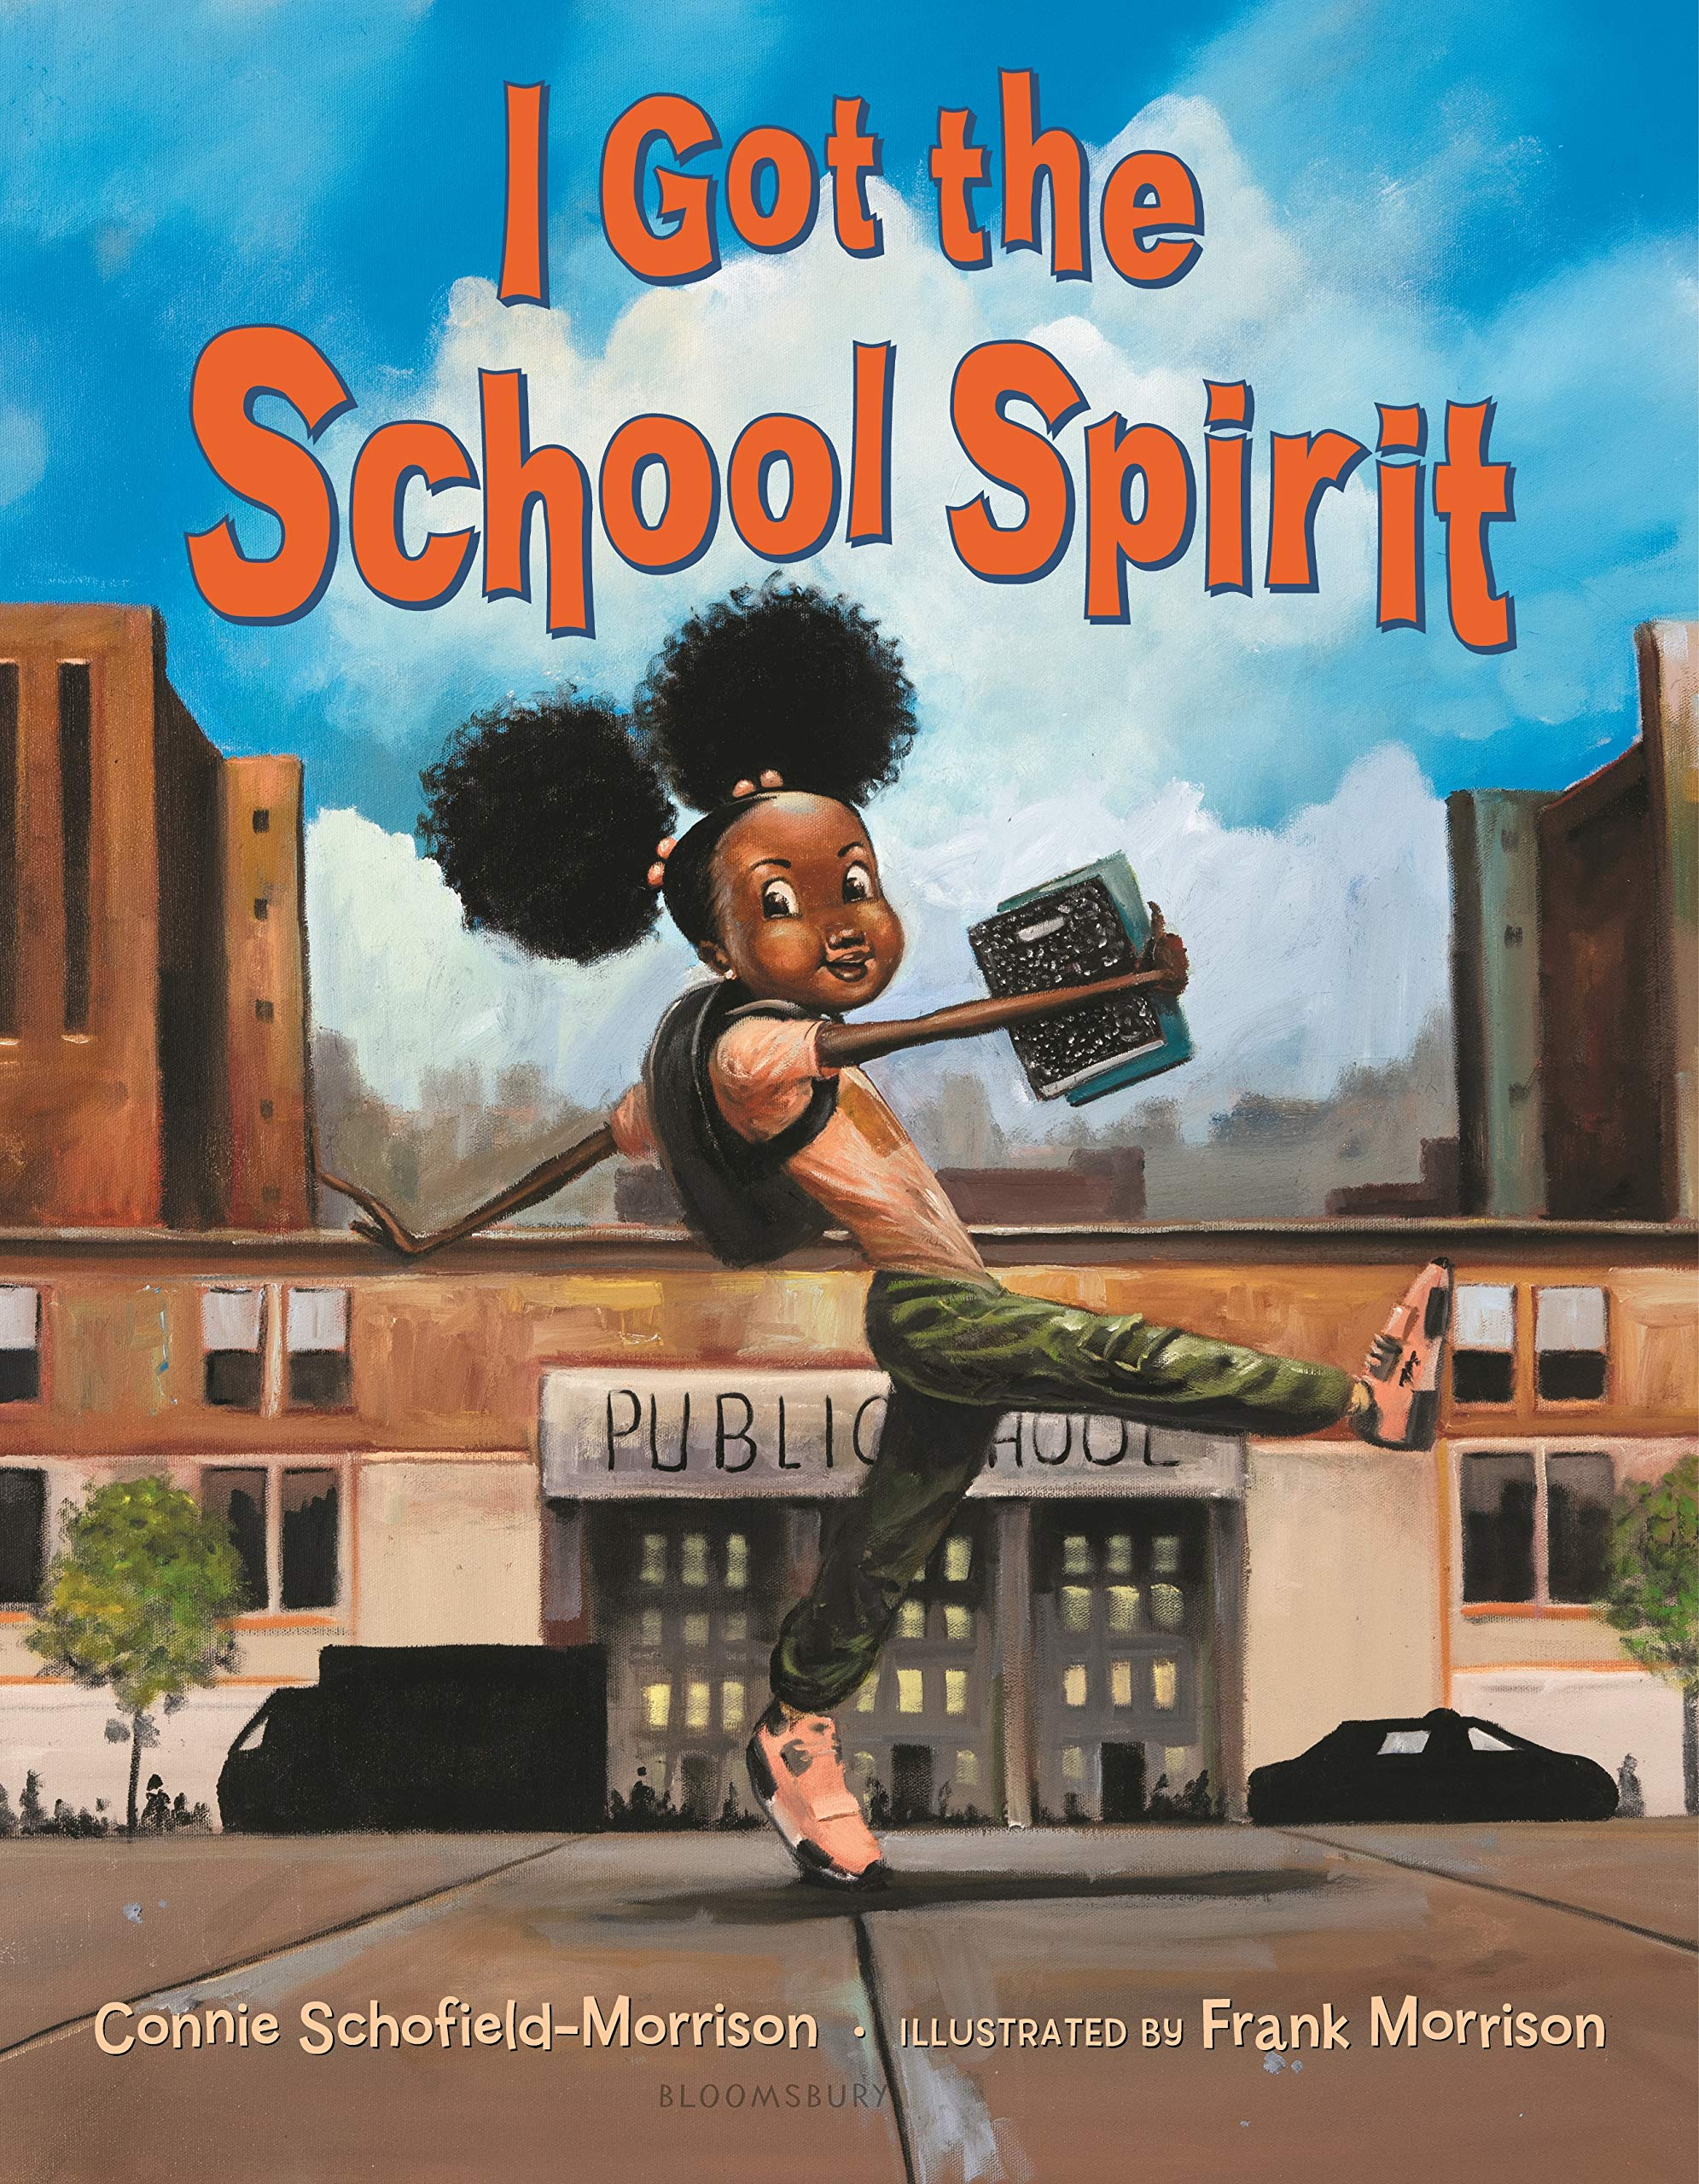 I Got the School Spirit: Schofield-Morrison, Connie, Morrison, Frank:  9781547602612: Amazon.com: Books